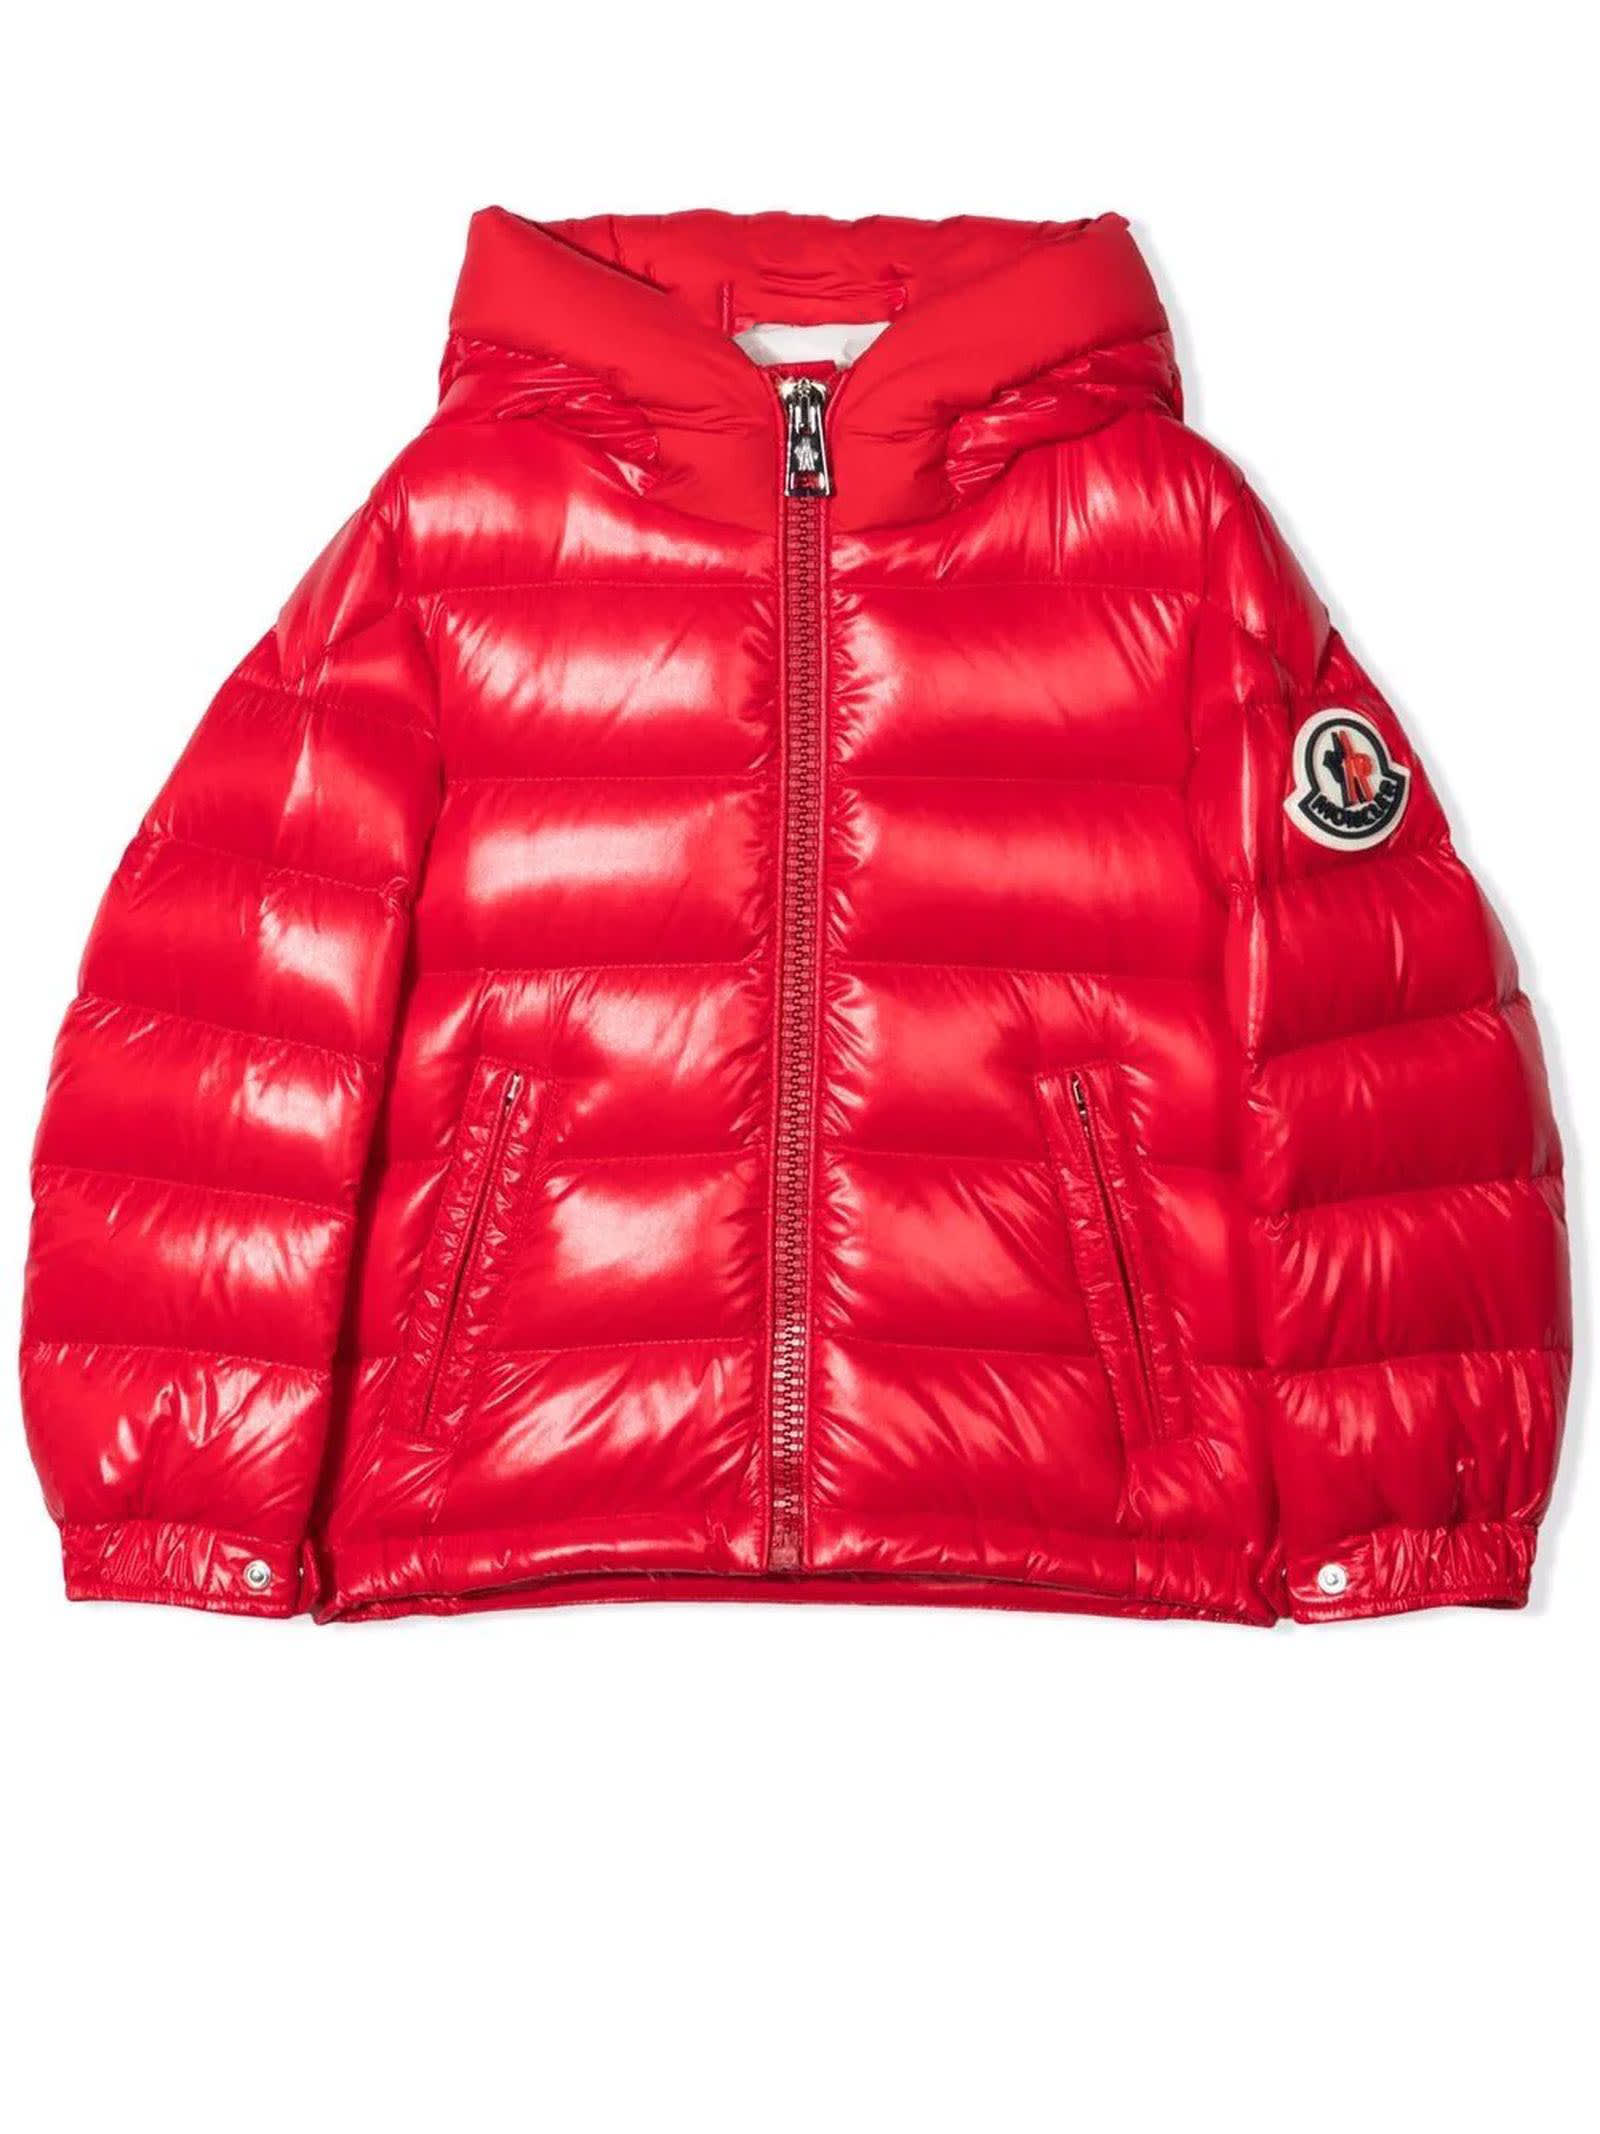 Moncler Cherry Red Puffer Jacket